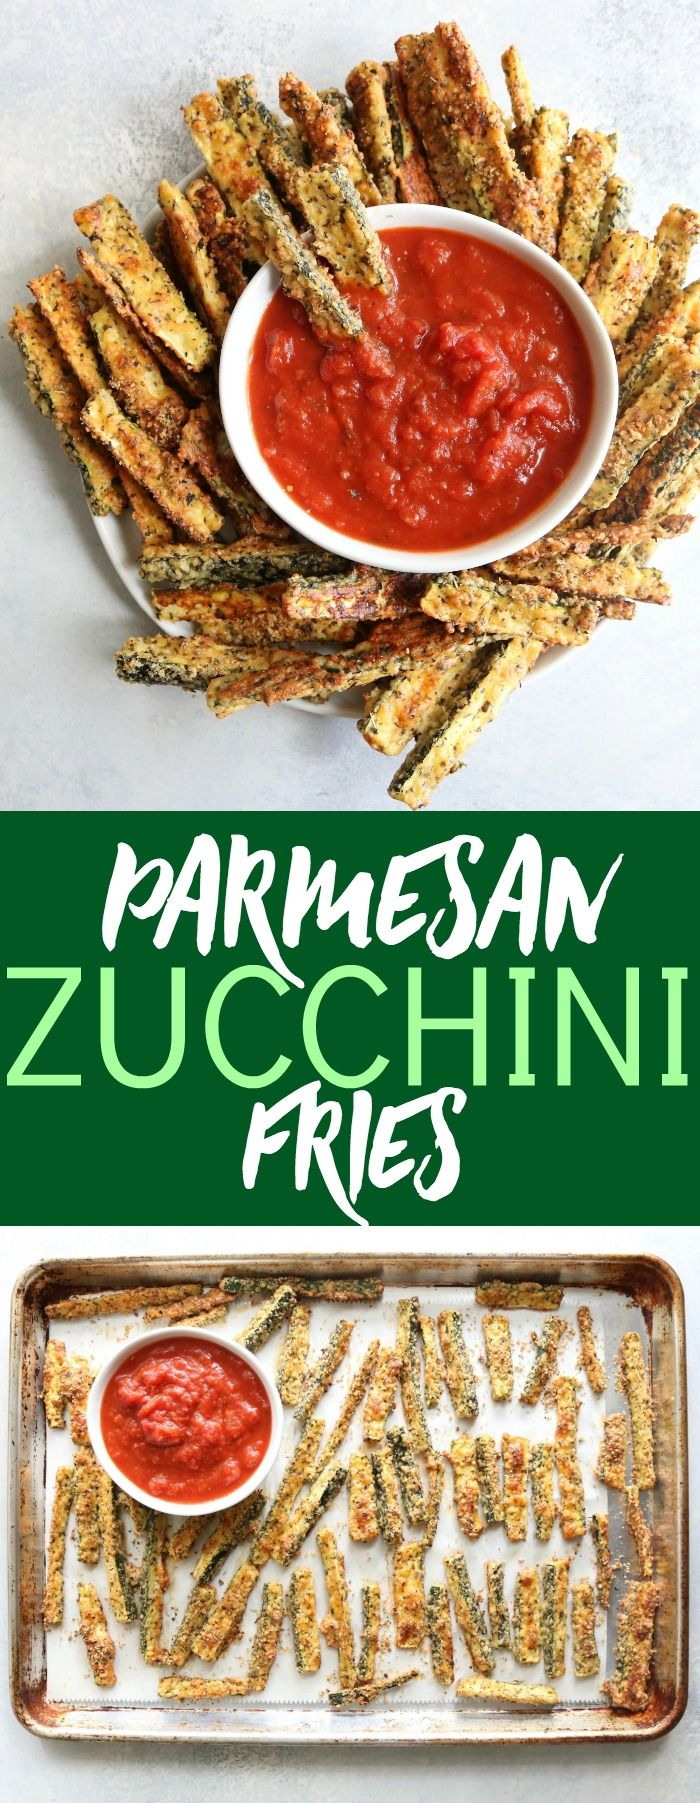 Delicious and addicting Parmesan Crusted Zucchini Fries make a perfect low carb and gluten free appetizer, side, or snack! So insanely yummy!!